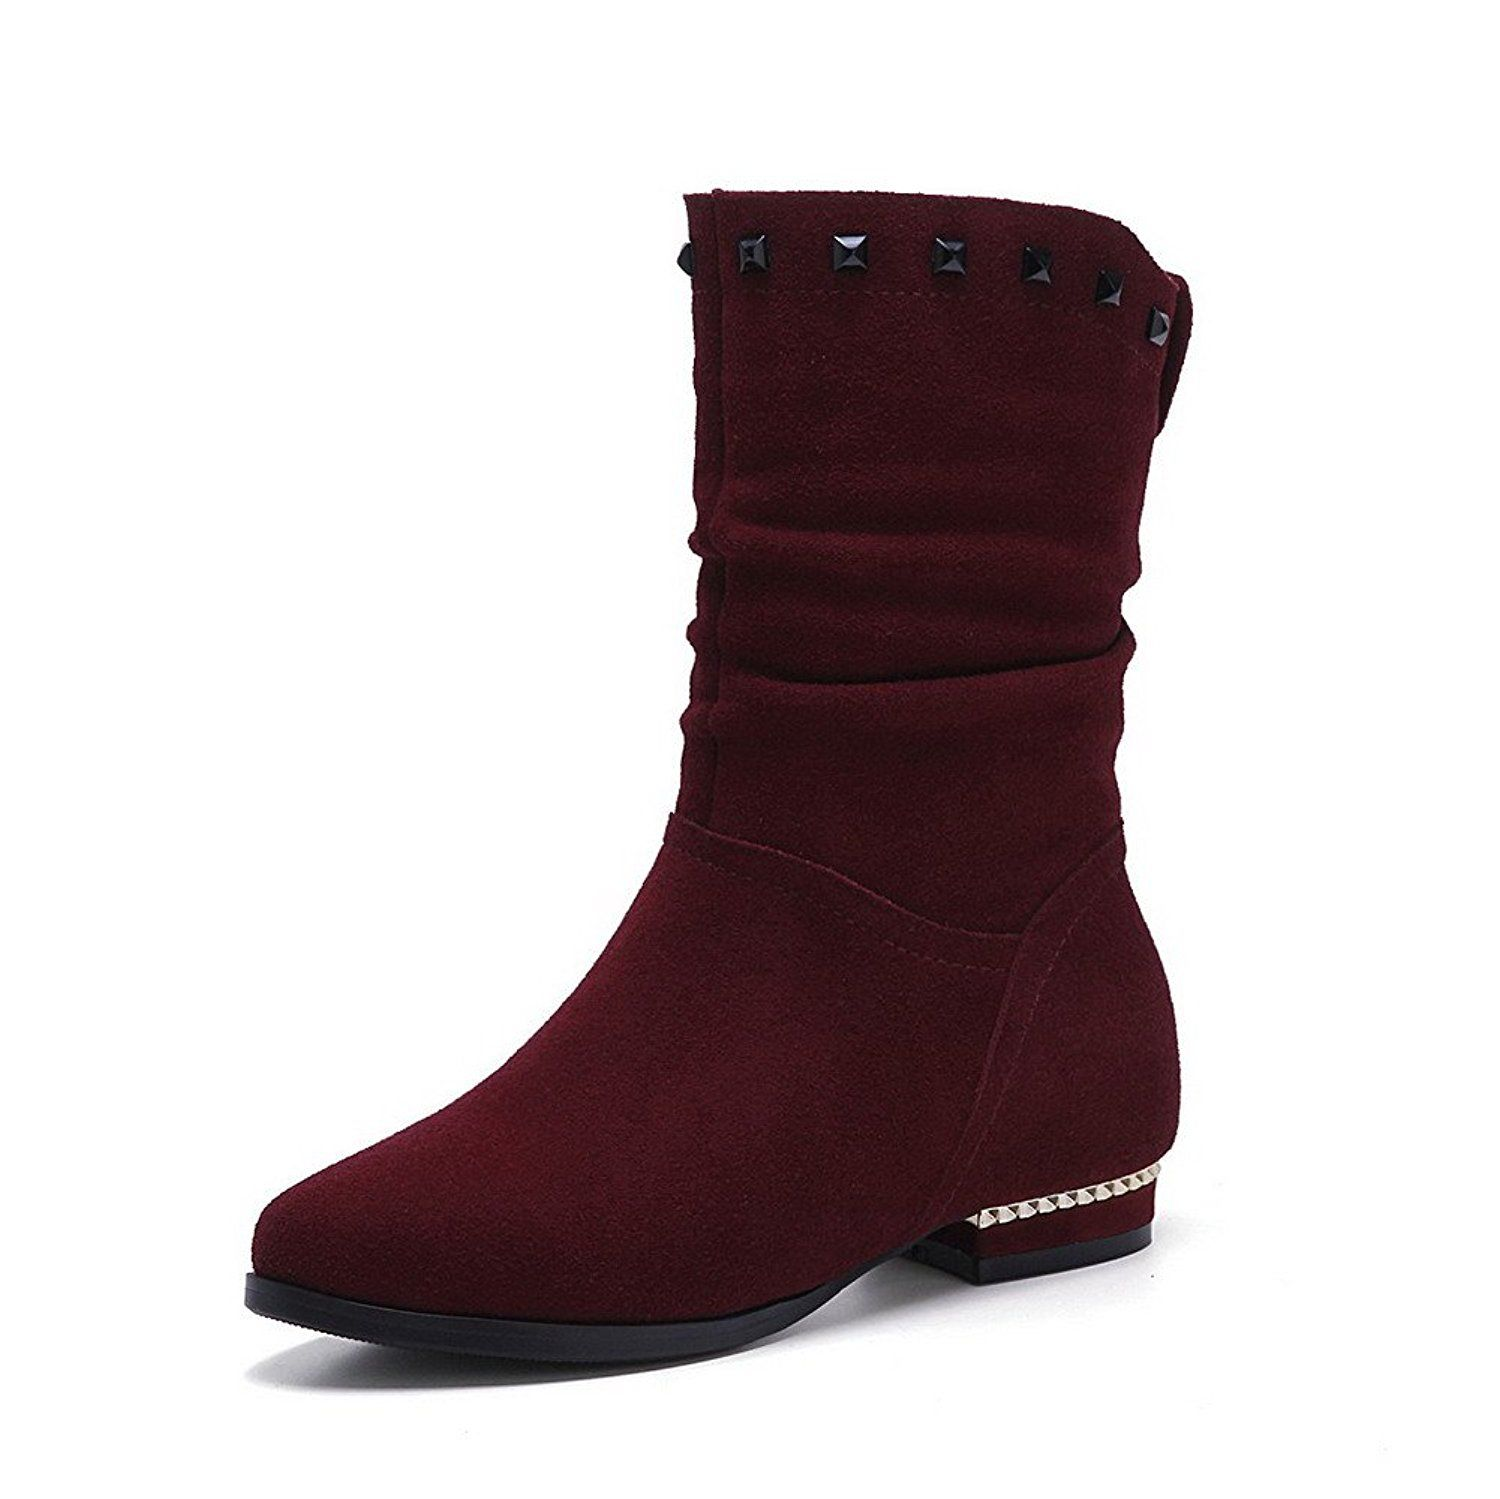 Maymeenth Women S Kitten Heels Frosted Solid Boots With Heighten Inside And Thread To View Further For Women S Over The Knee Boots Kitten Heel Boots Boots